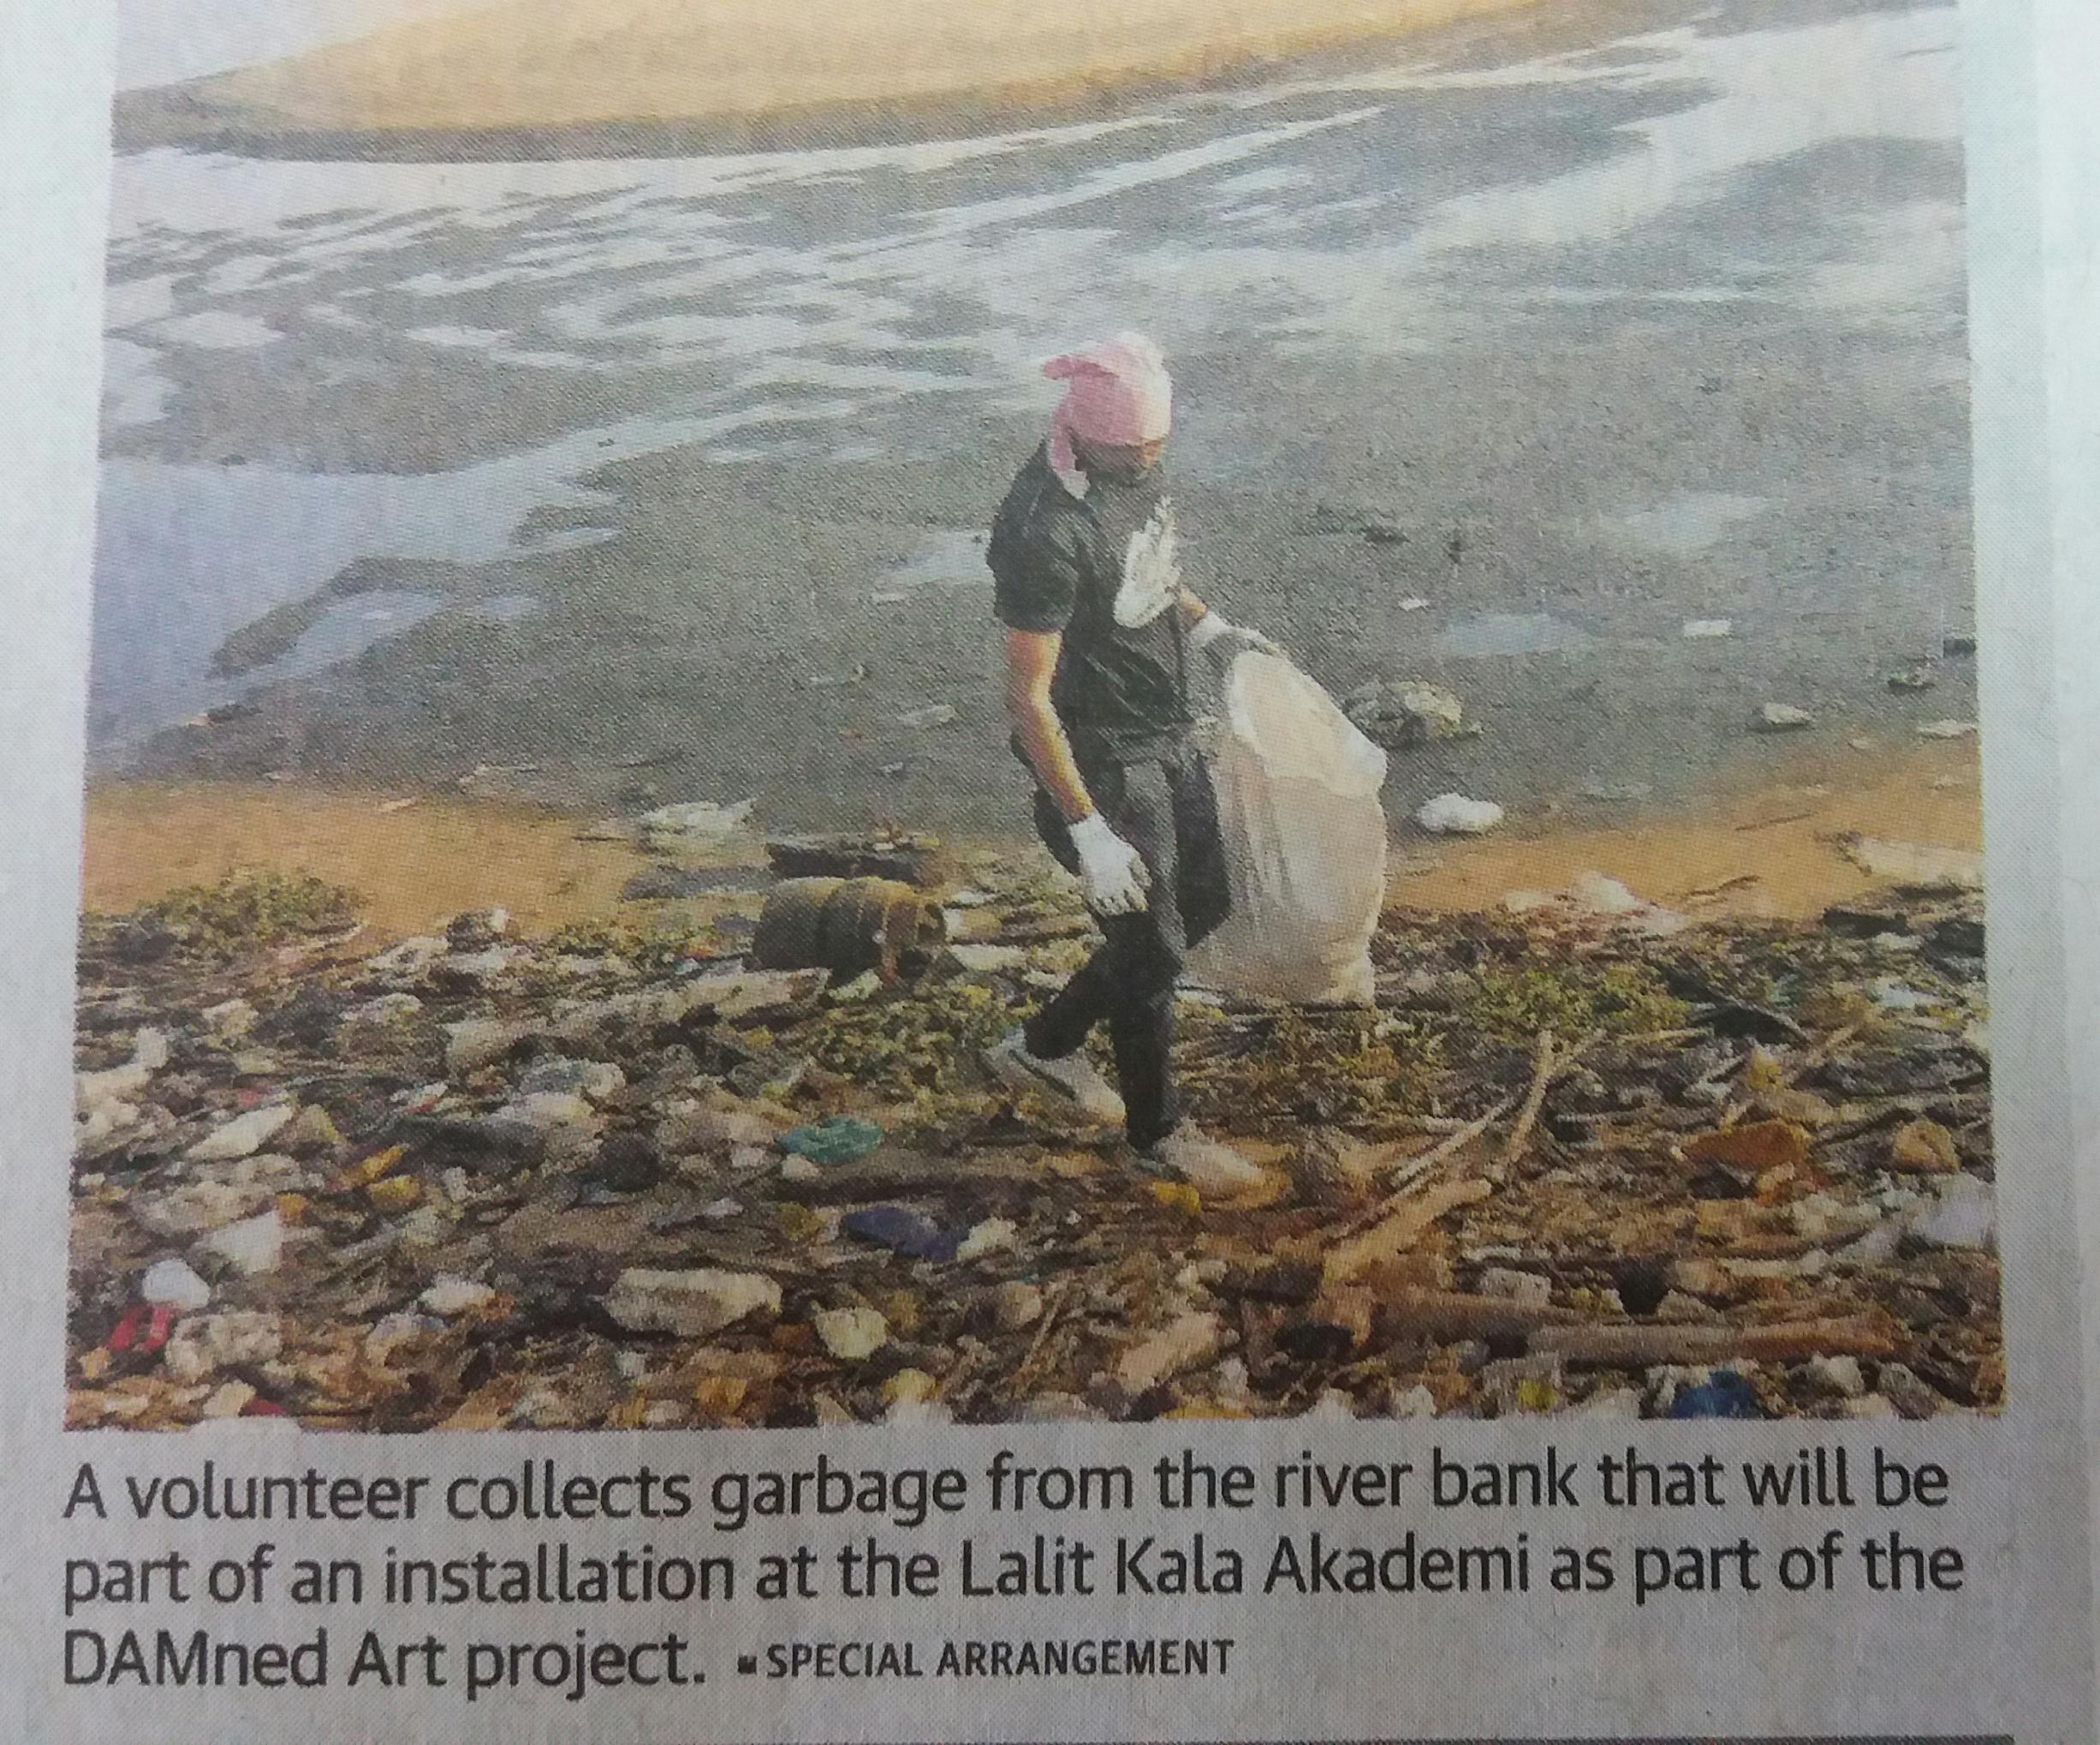 L.C.Swachh_-_volunteers_to_collect____20180121105705___.jpg